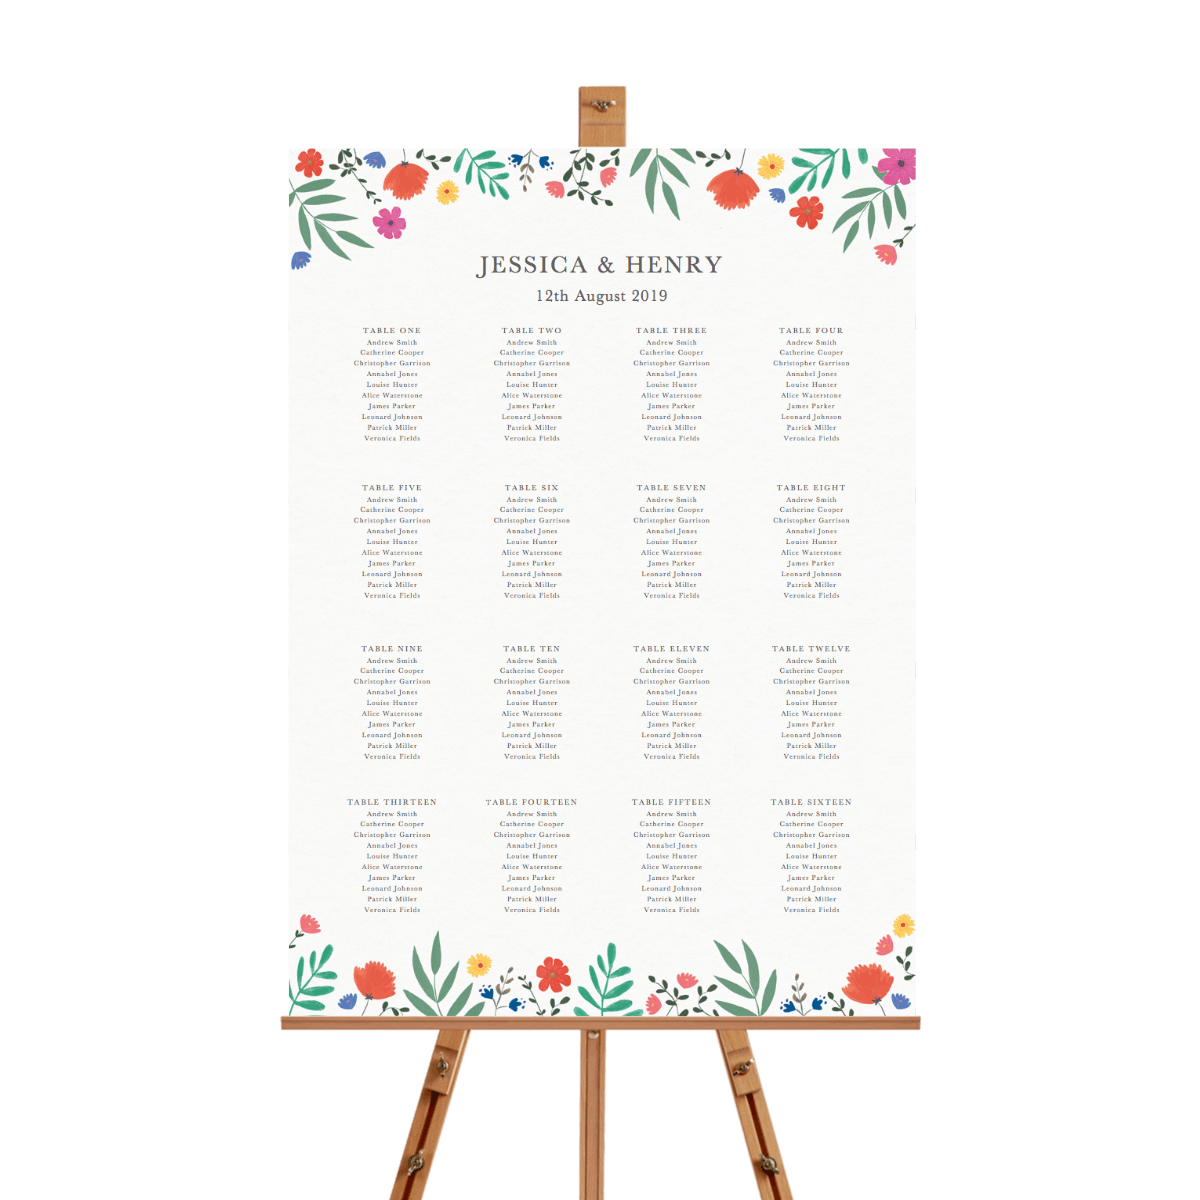 Https%3a%2f%2fwww.papier.com%2fproduct image%2f40463%2f1%2fbright wild flowers 10123 front 1530180340.png?ixlib=rb 1.1